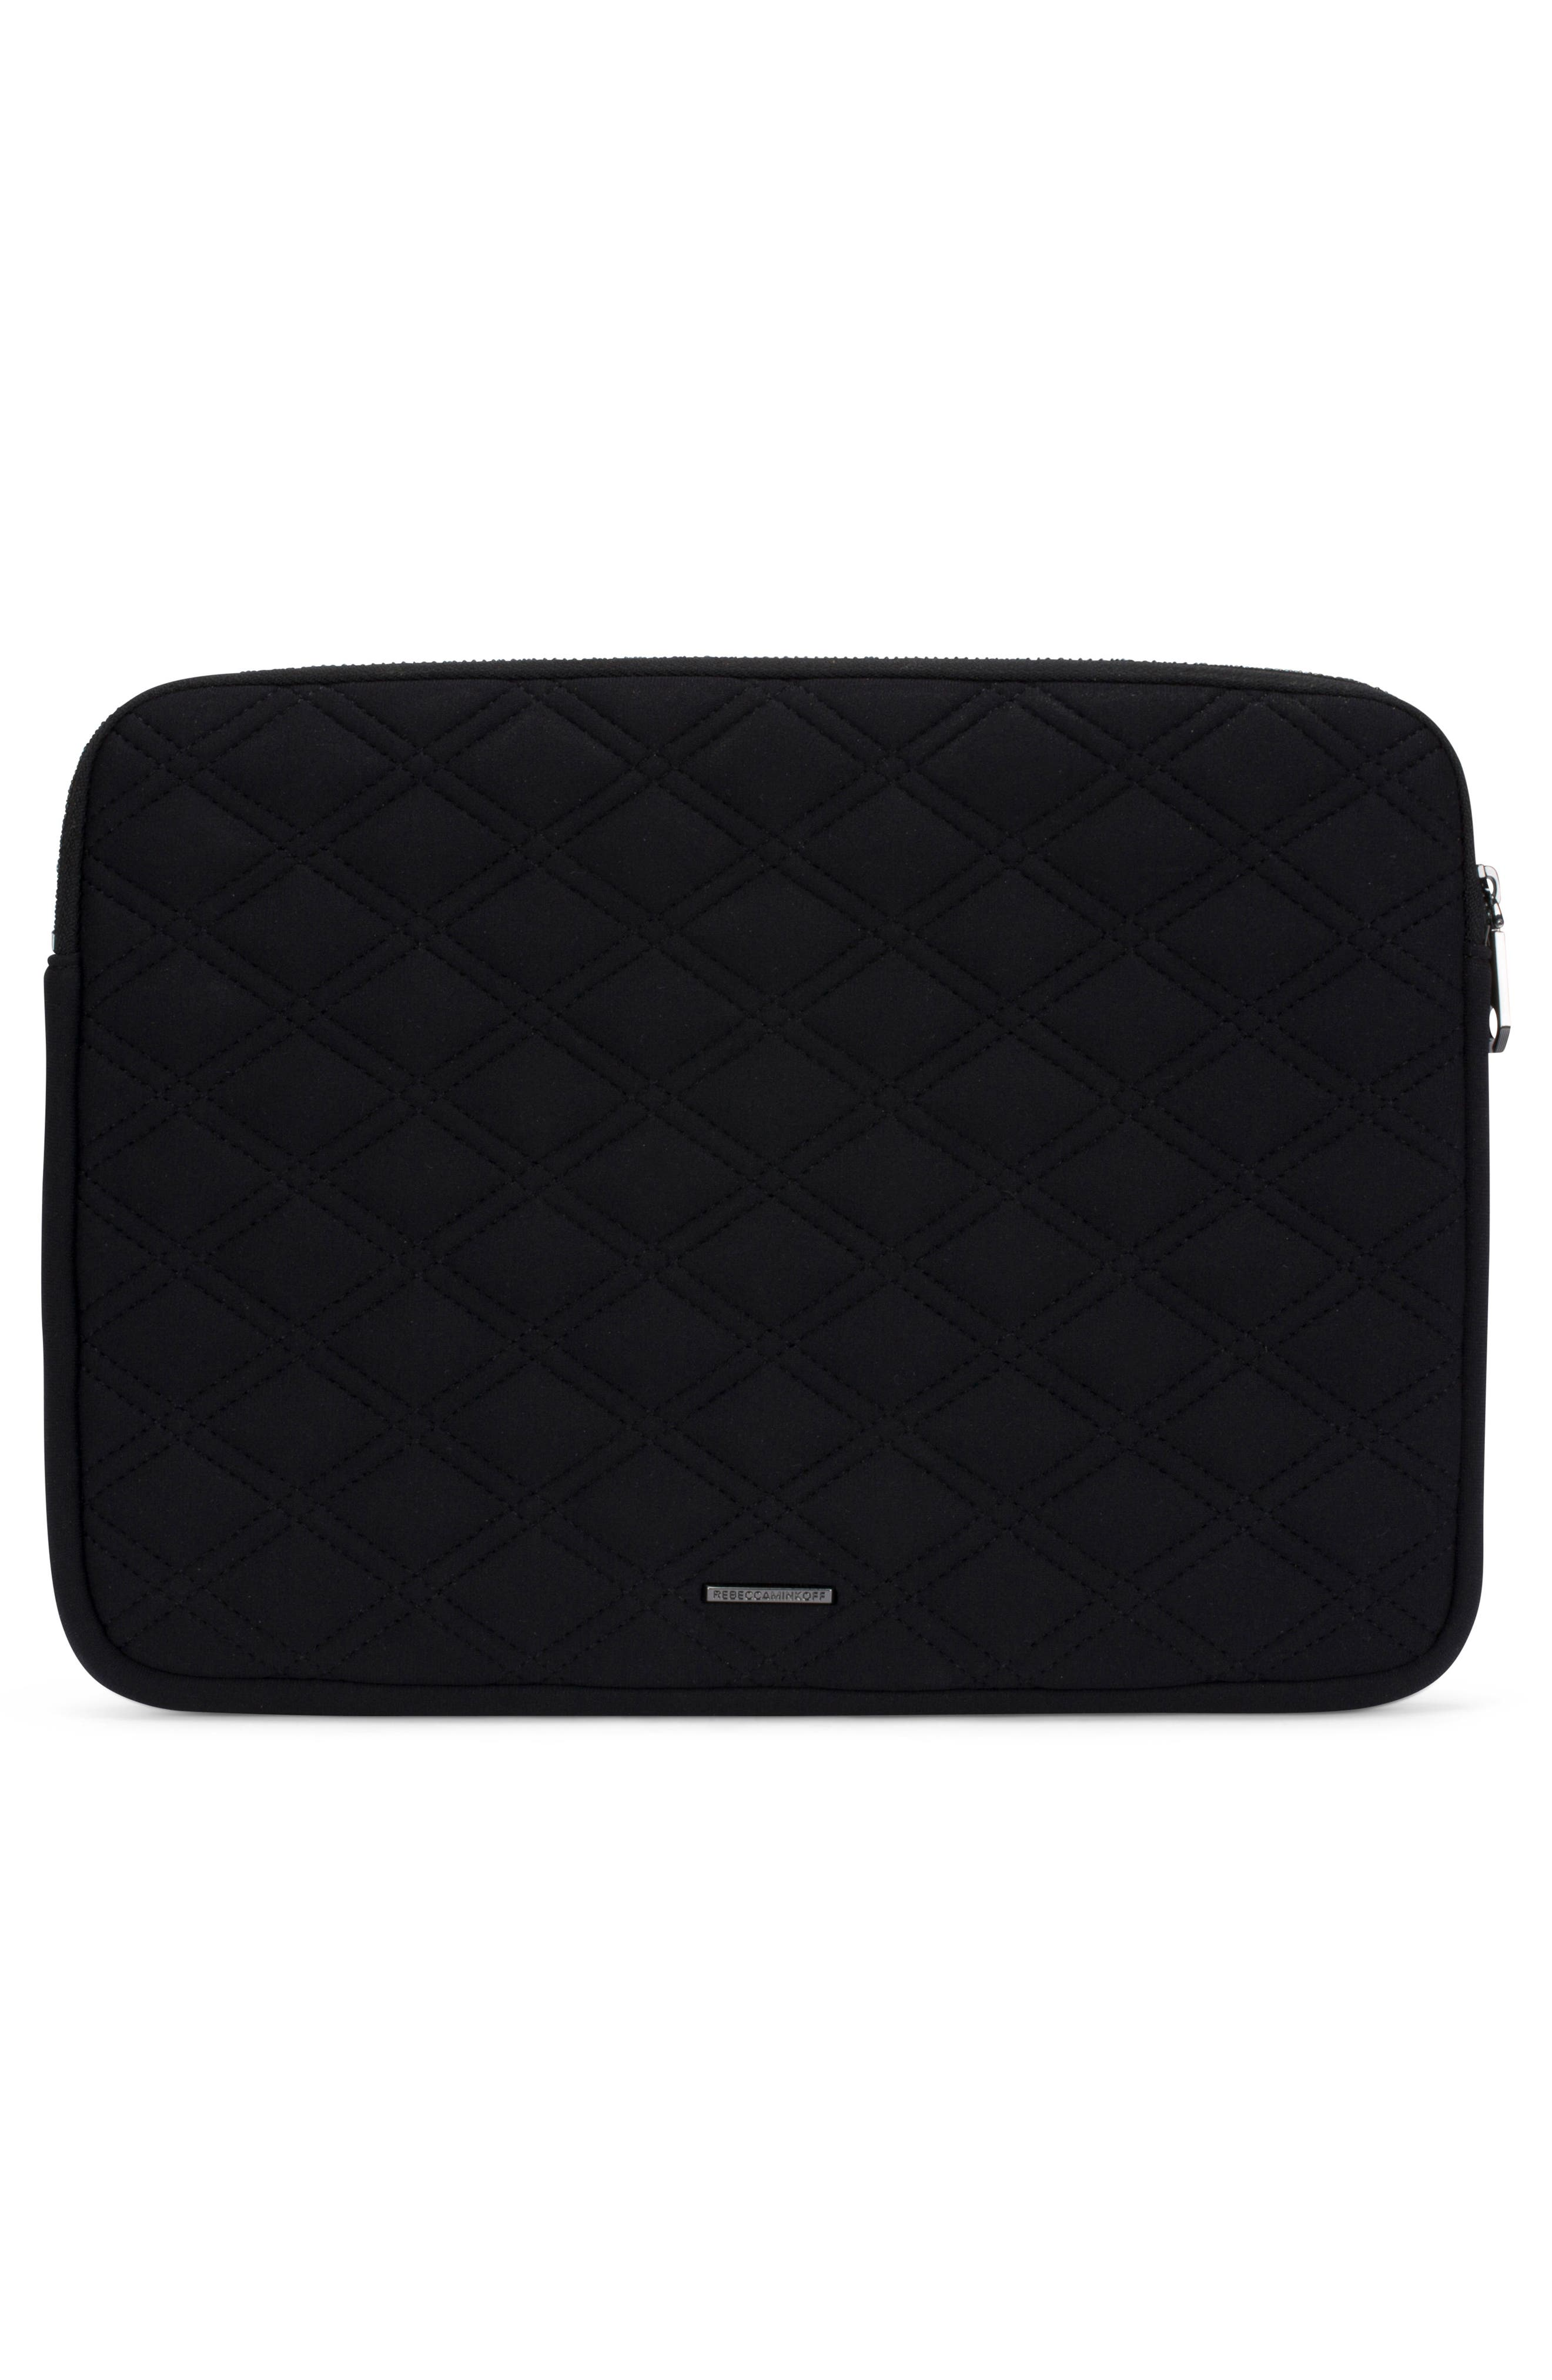 Quilted Stud Laptop Case,                             Alternate thumbnail 5, color,                             Black/ Black Pearl Studs